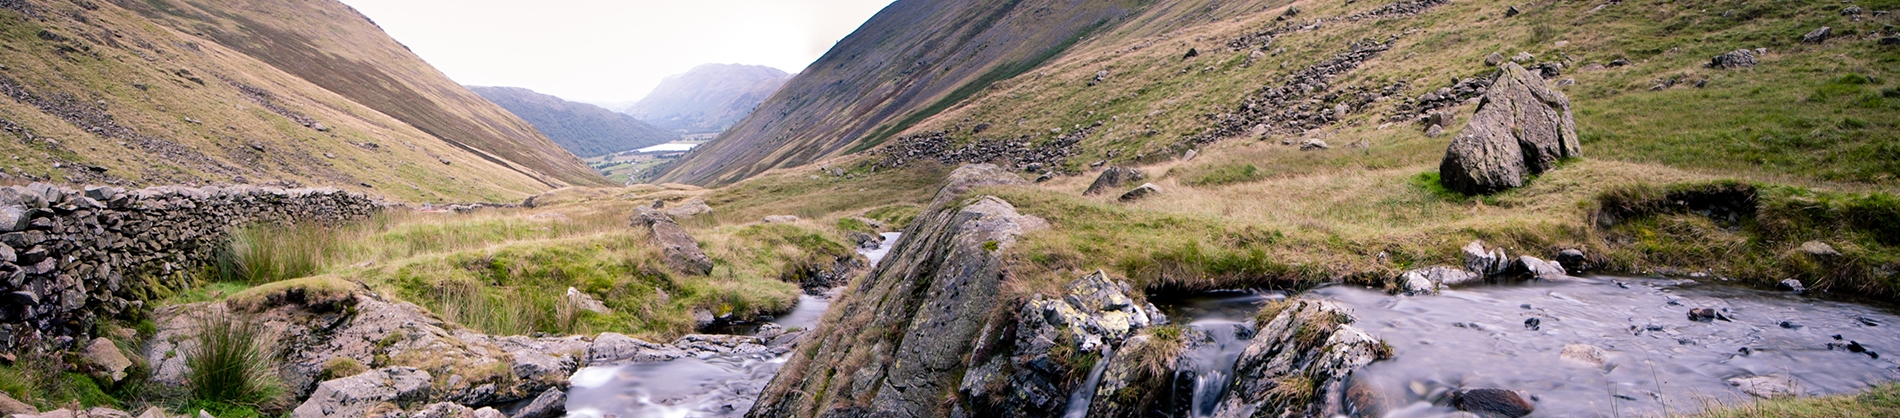 Mountain valley with a stream running through